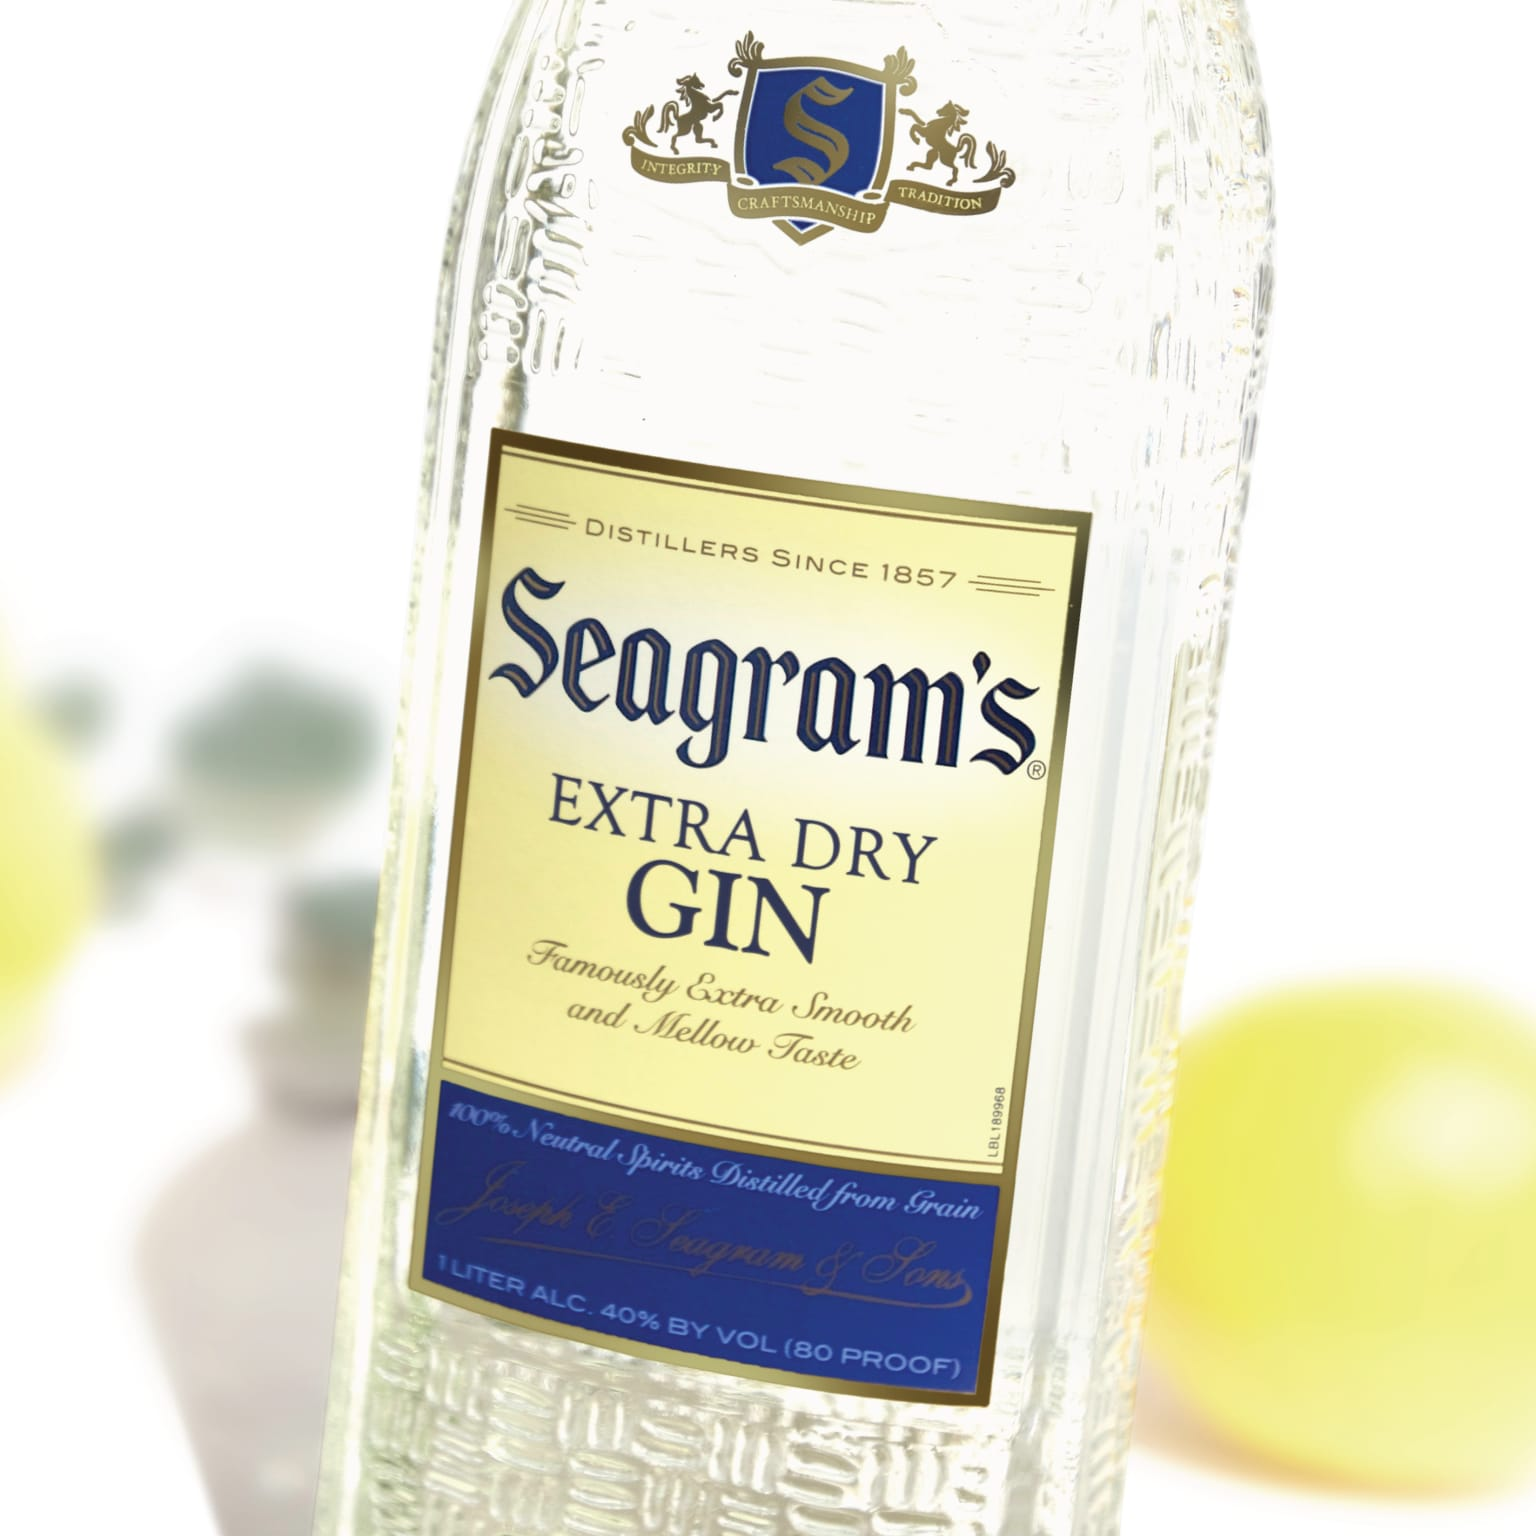 Seagram's Extra Dry Gin Logo and Package Design